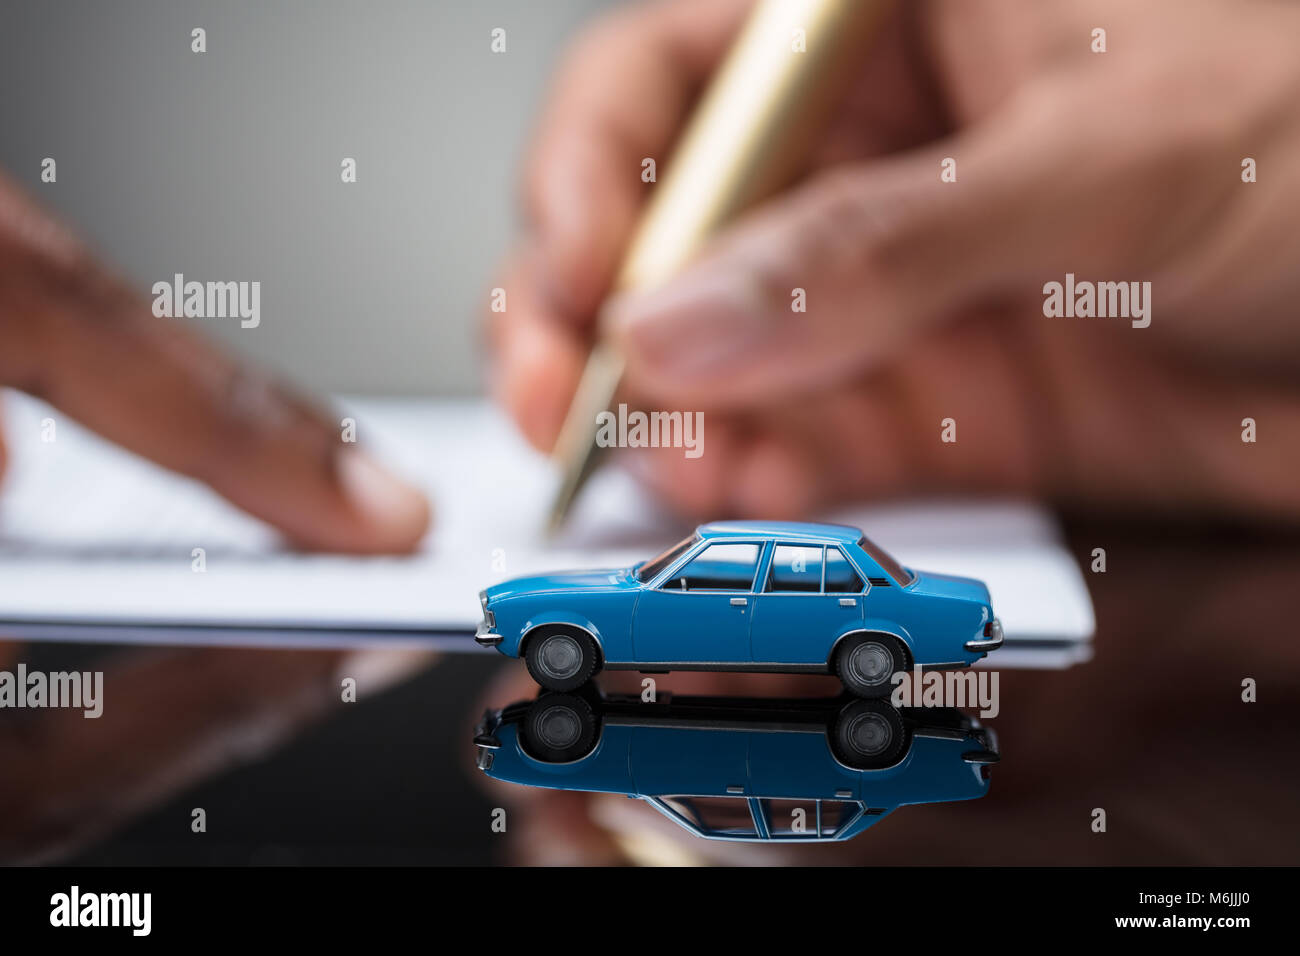 A Person\'s Hand Signing Car Loan Agreement Contract With Car Toy On ...